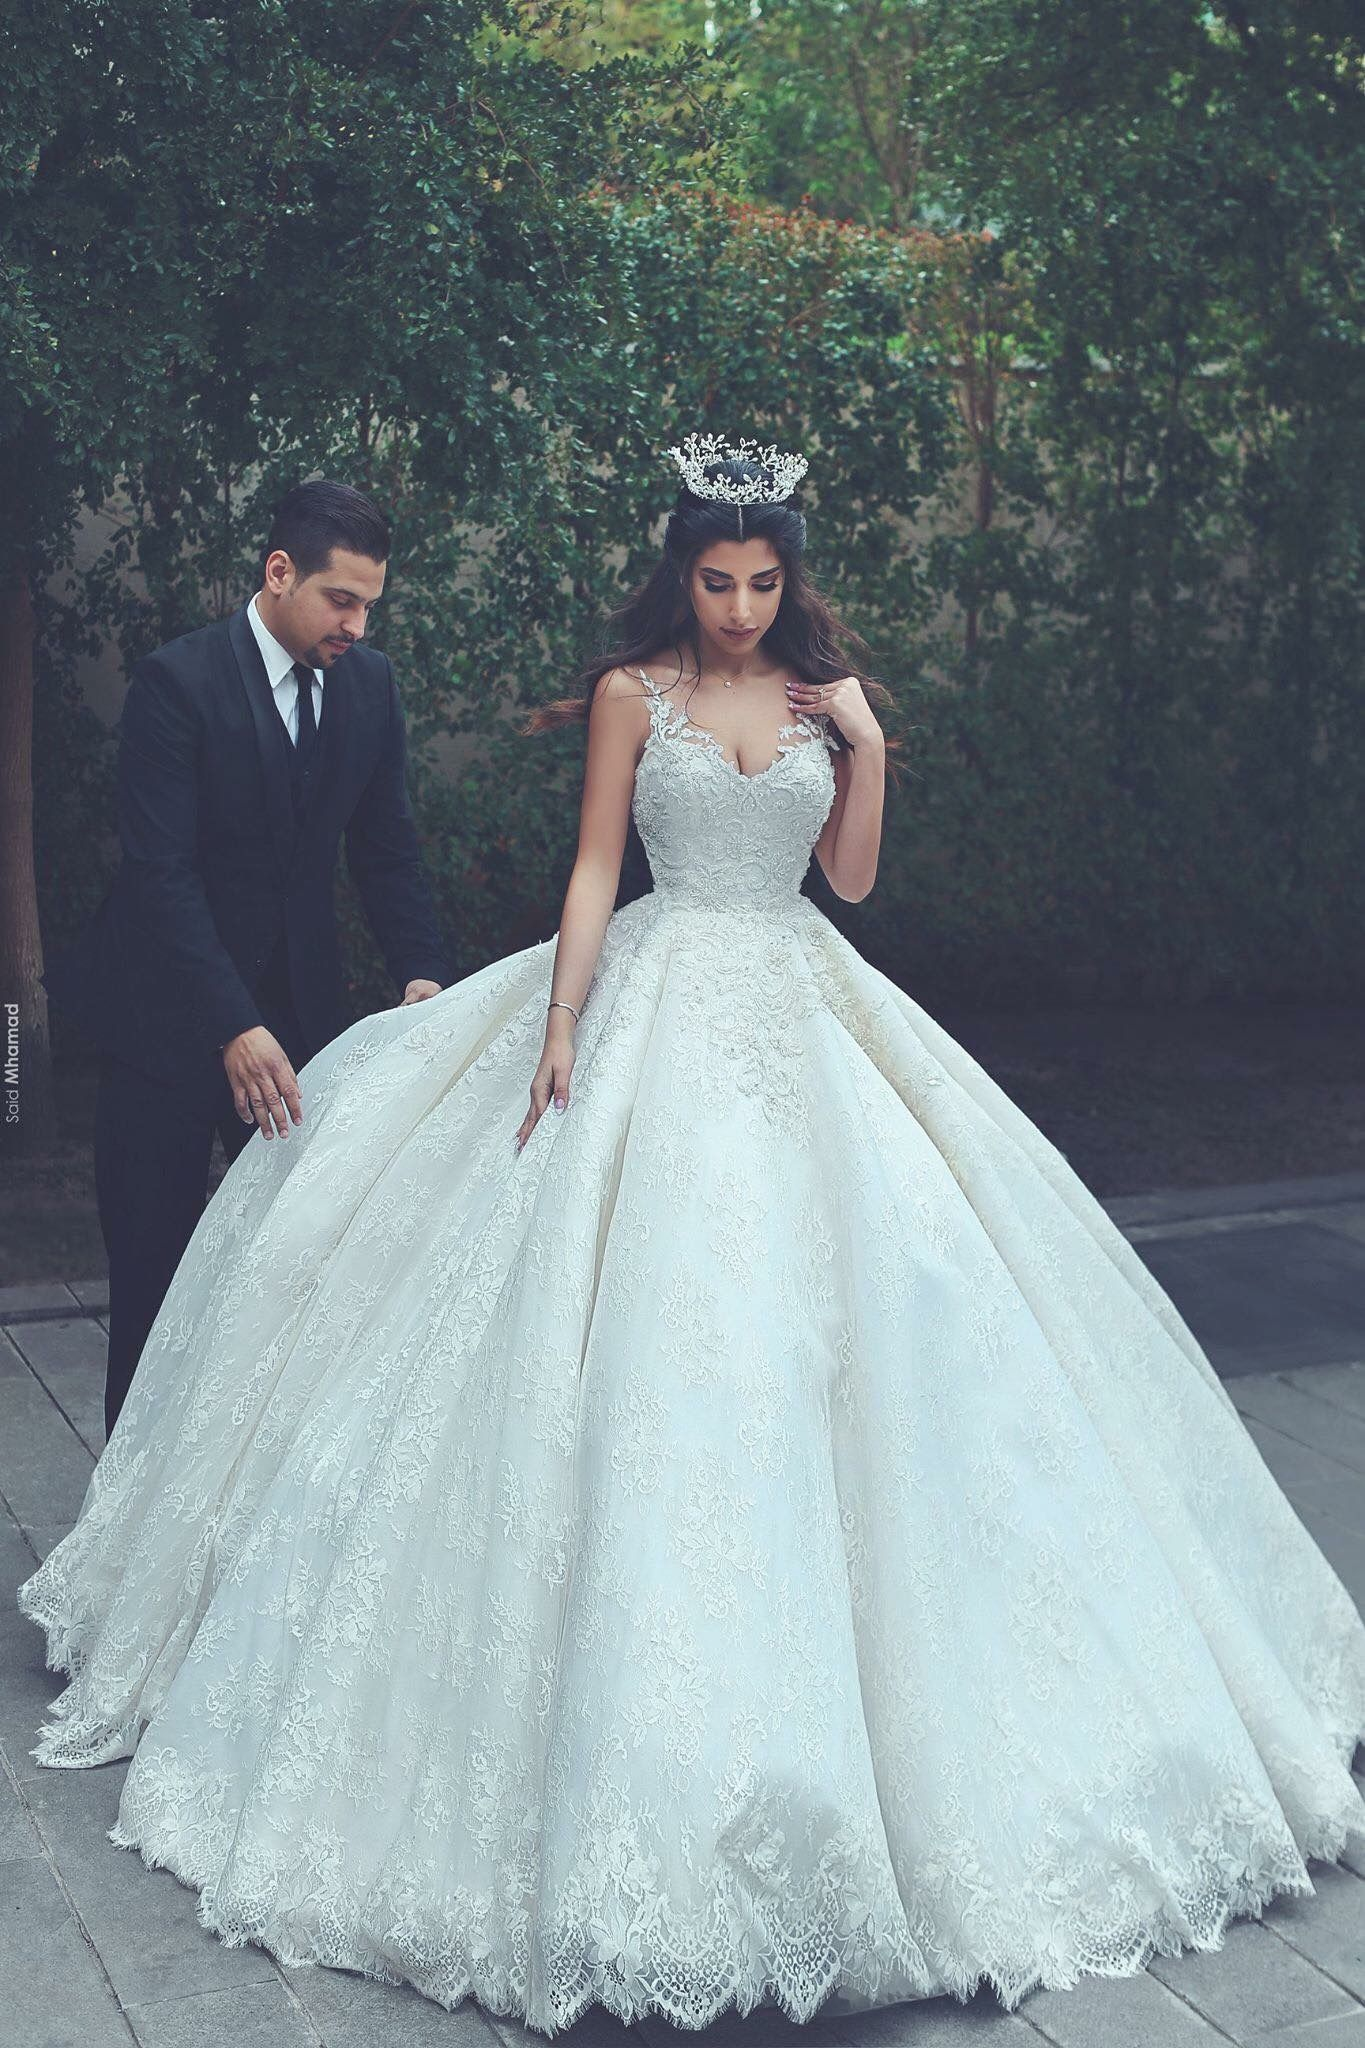 Vestido de noiva | Wedding/Marriage | Pinterest | Vestiditos ...